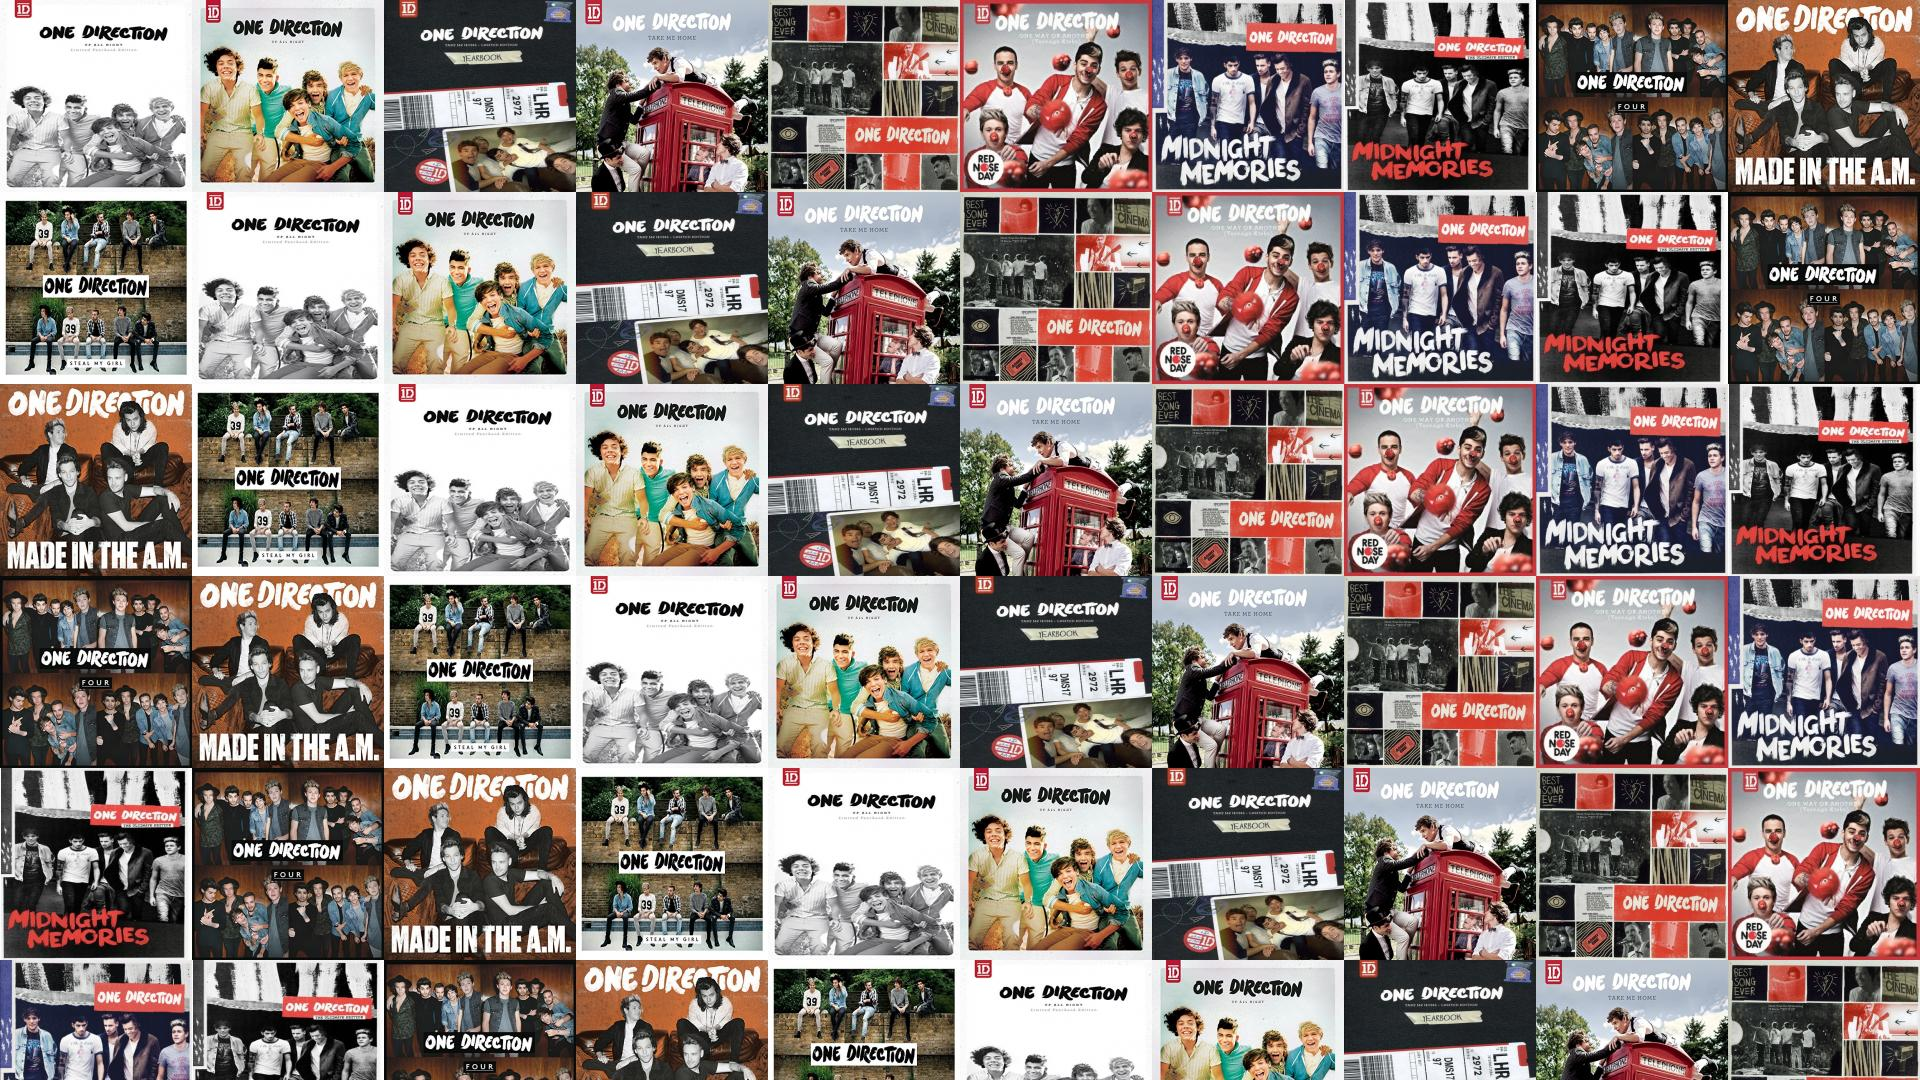 One Direction Albums Collage - HD Wallpaper